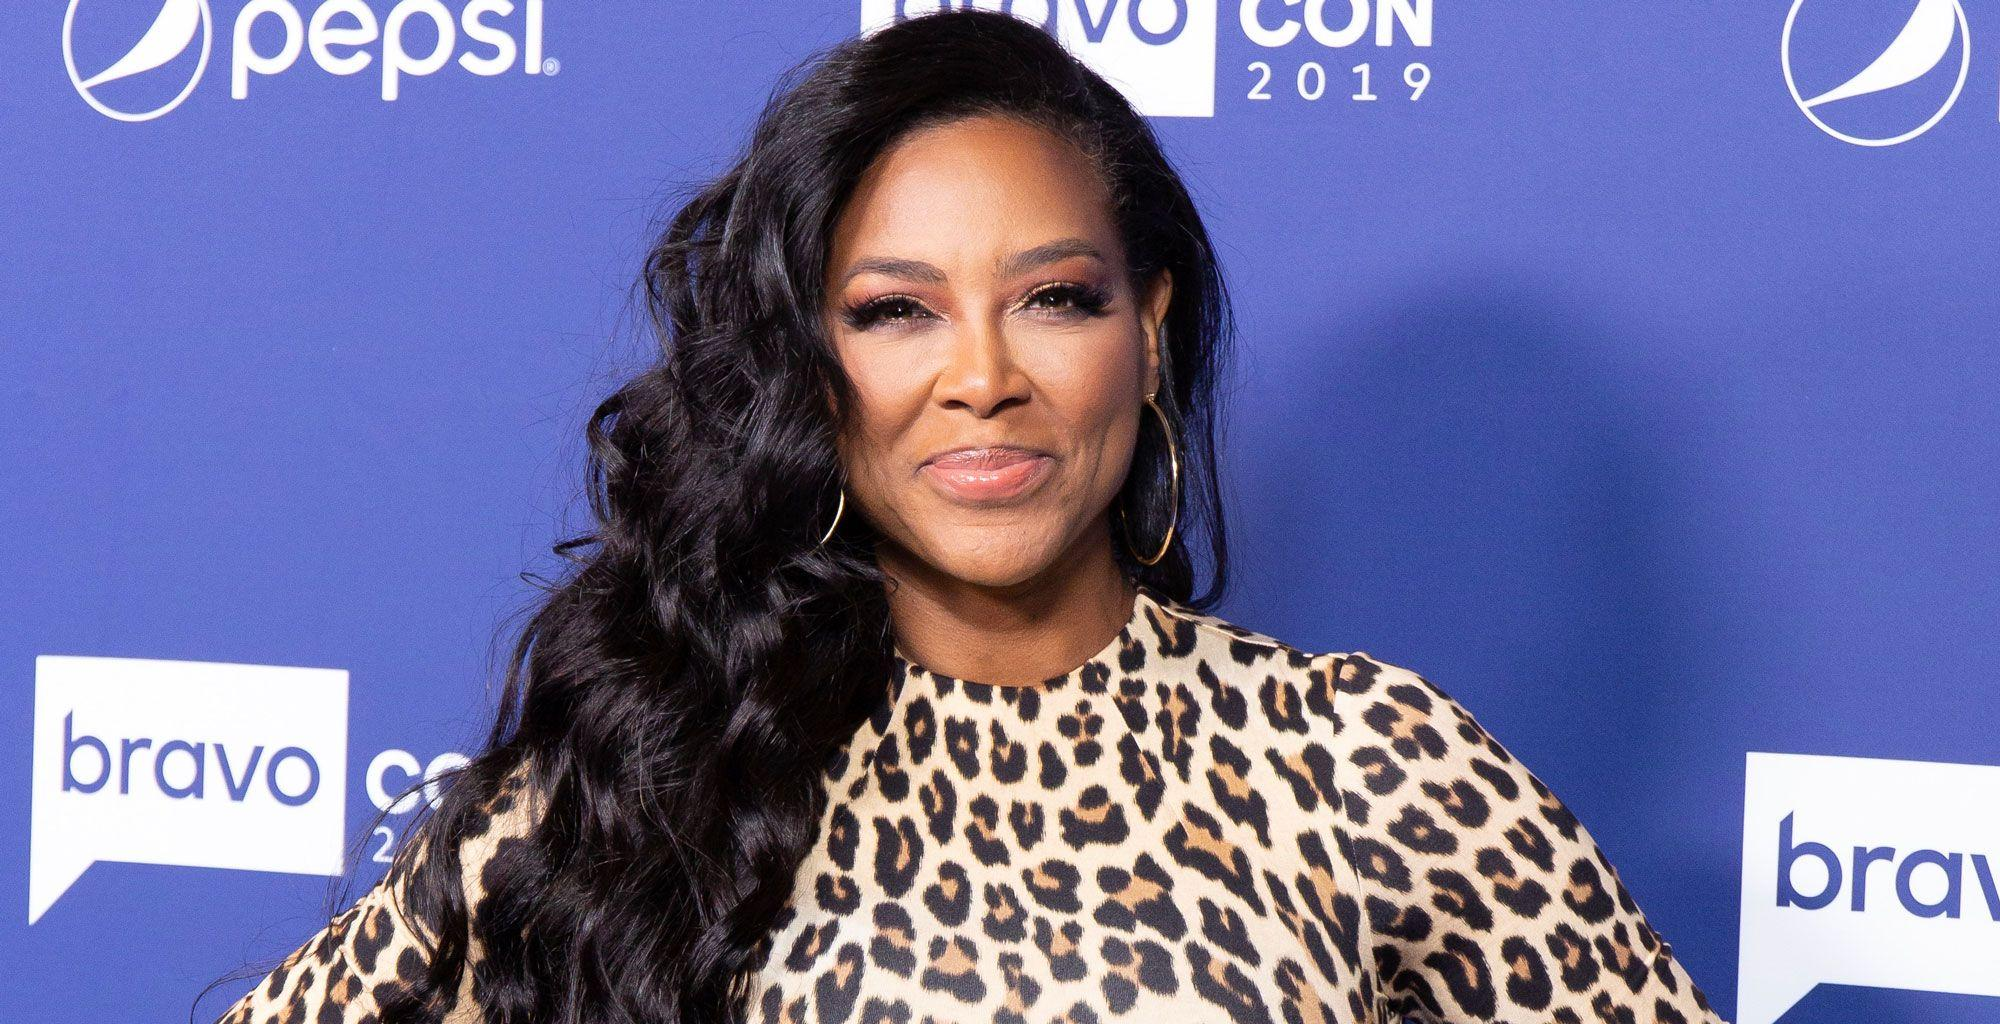 Kenya Moore Impresses Fans With This Throwback Photo - Check It Out Here